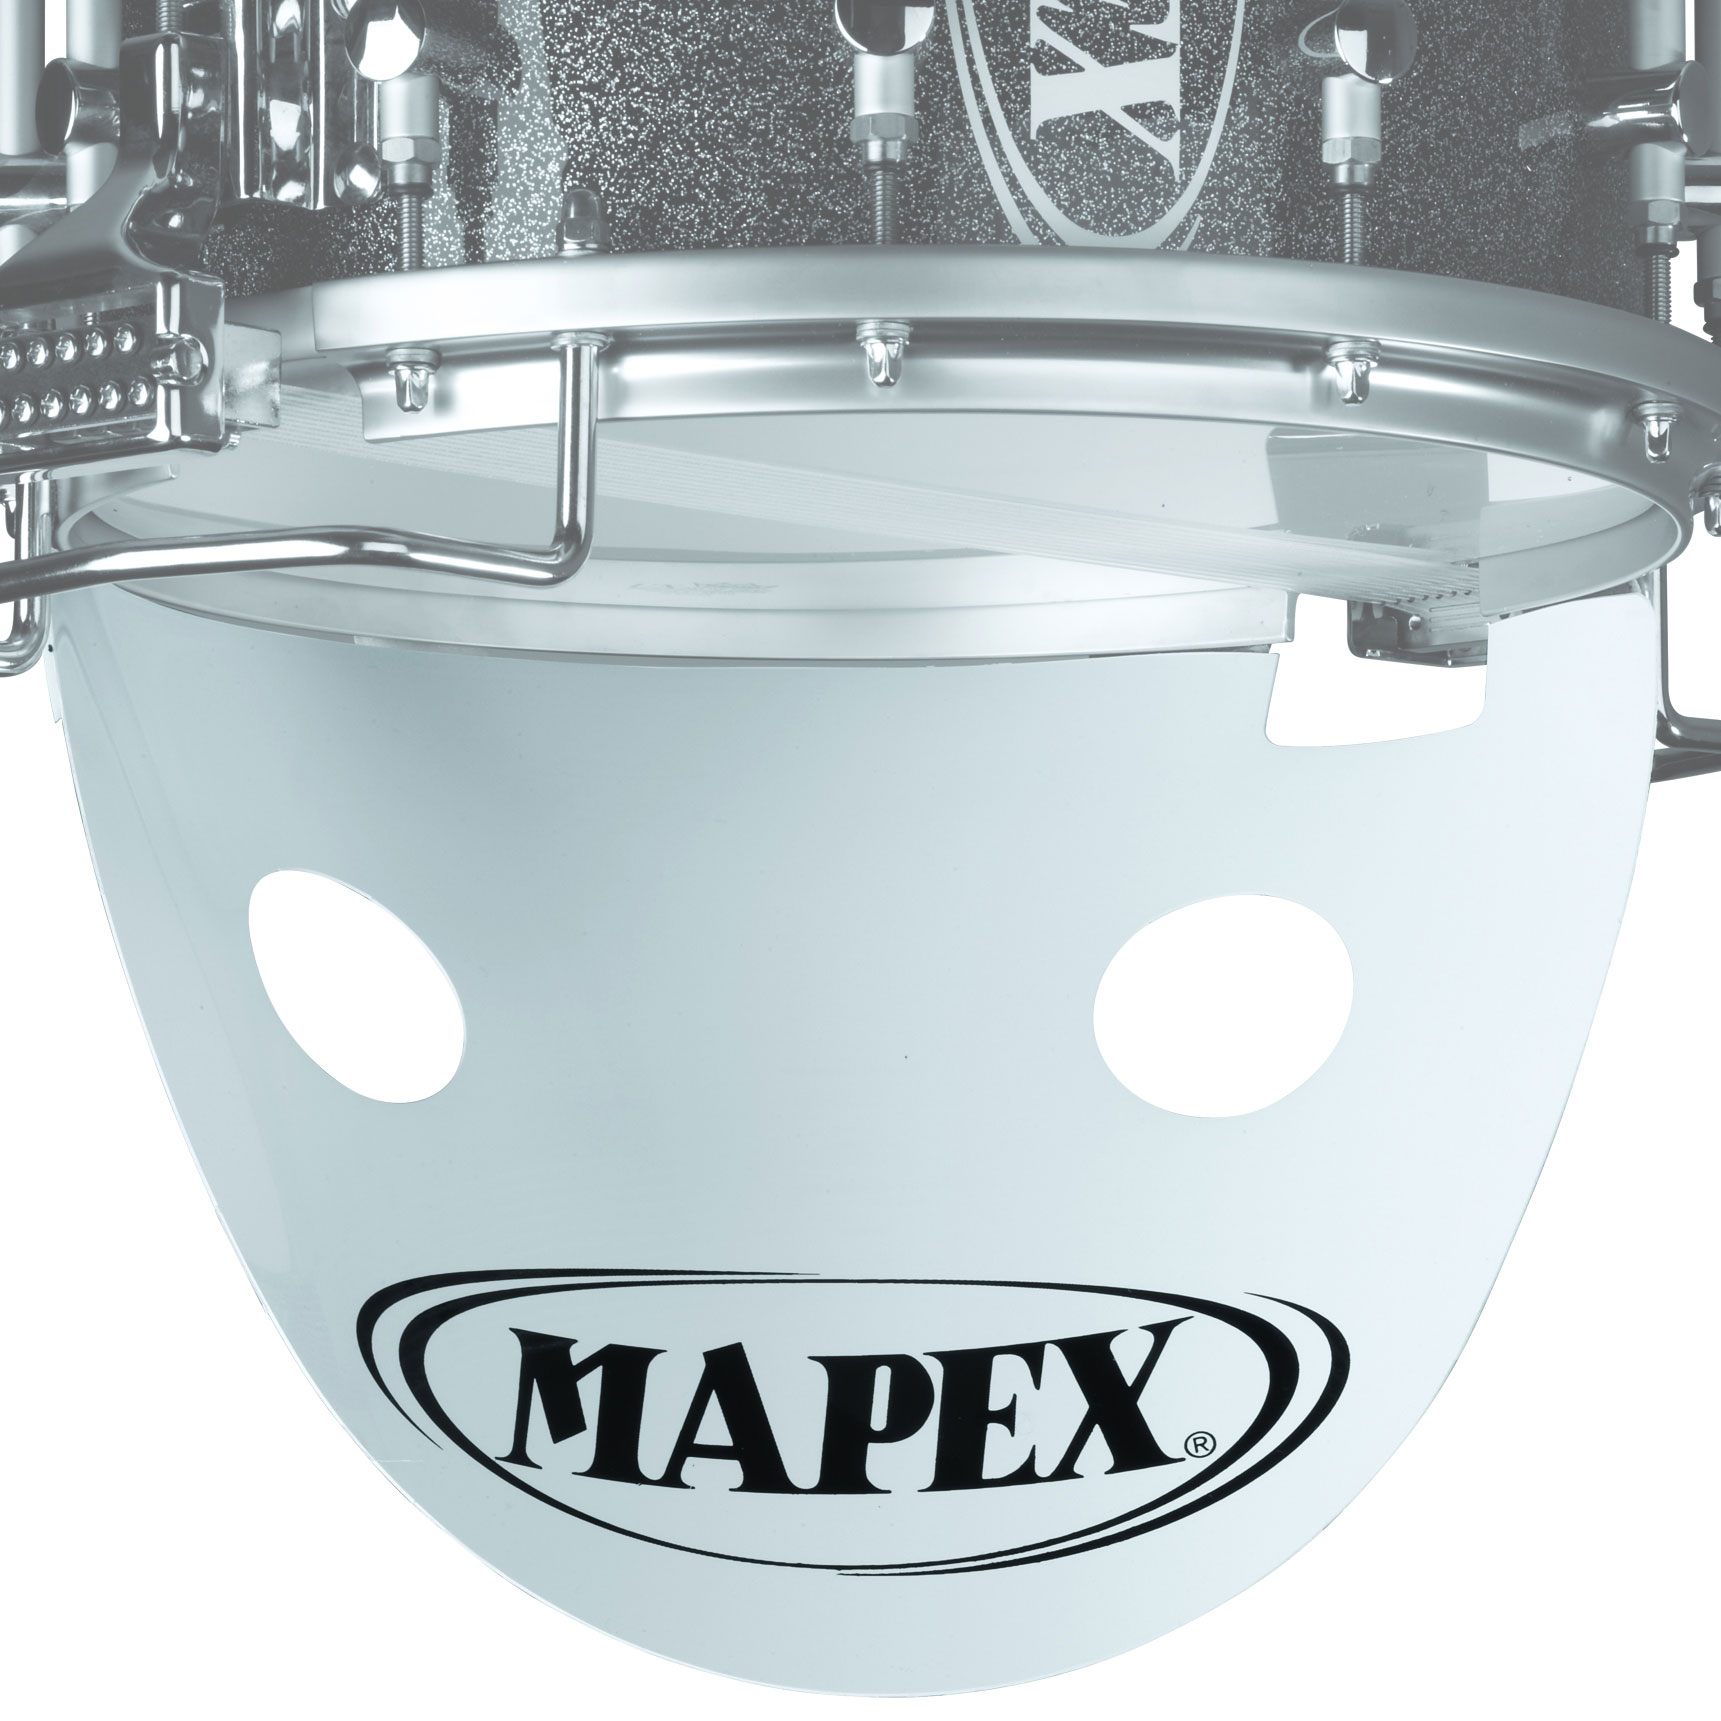 "Mapex 14"" White Snare Drum Projector with Mapex Logo"